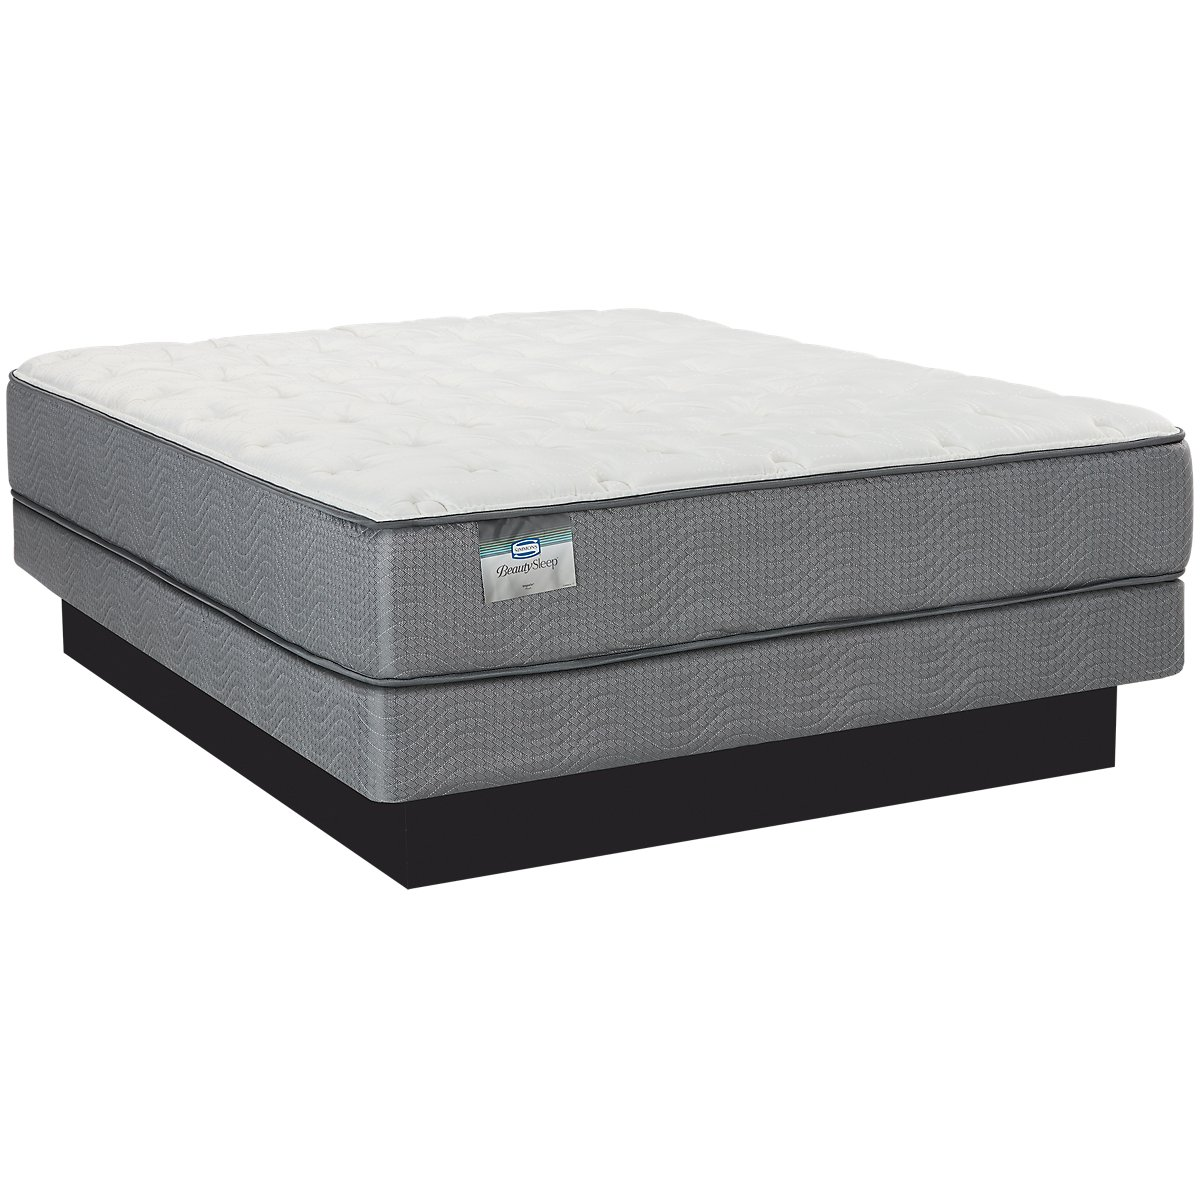 Beautysleep Impala Plush Low-Profile Mattress Set